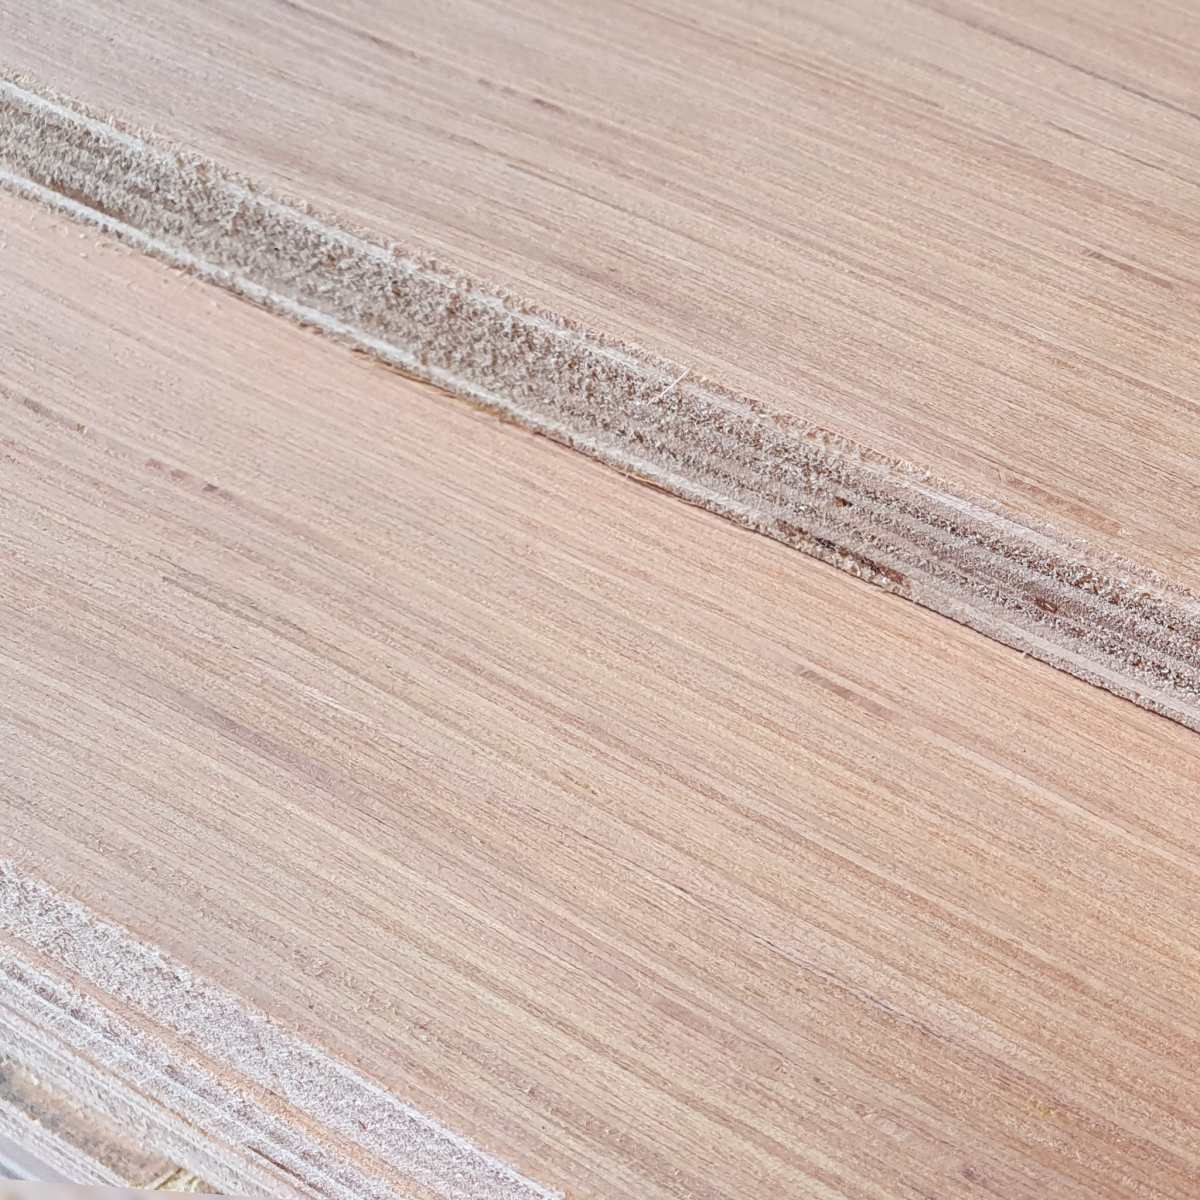 HardwoodPly Image by Websters Timber